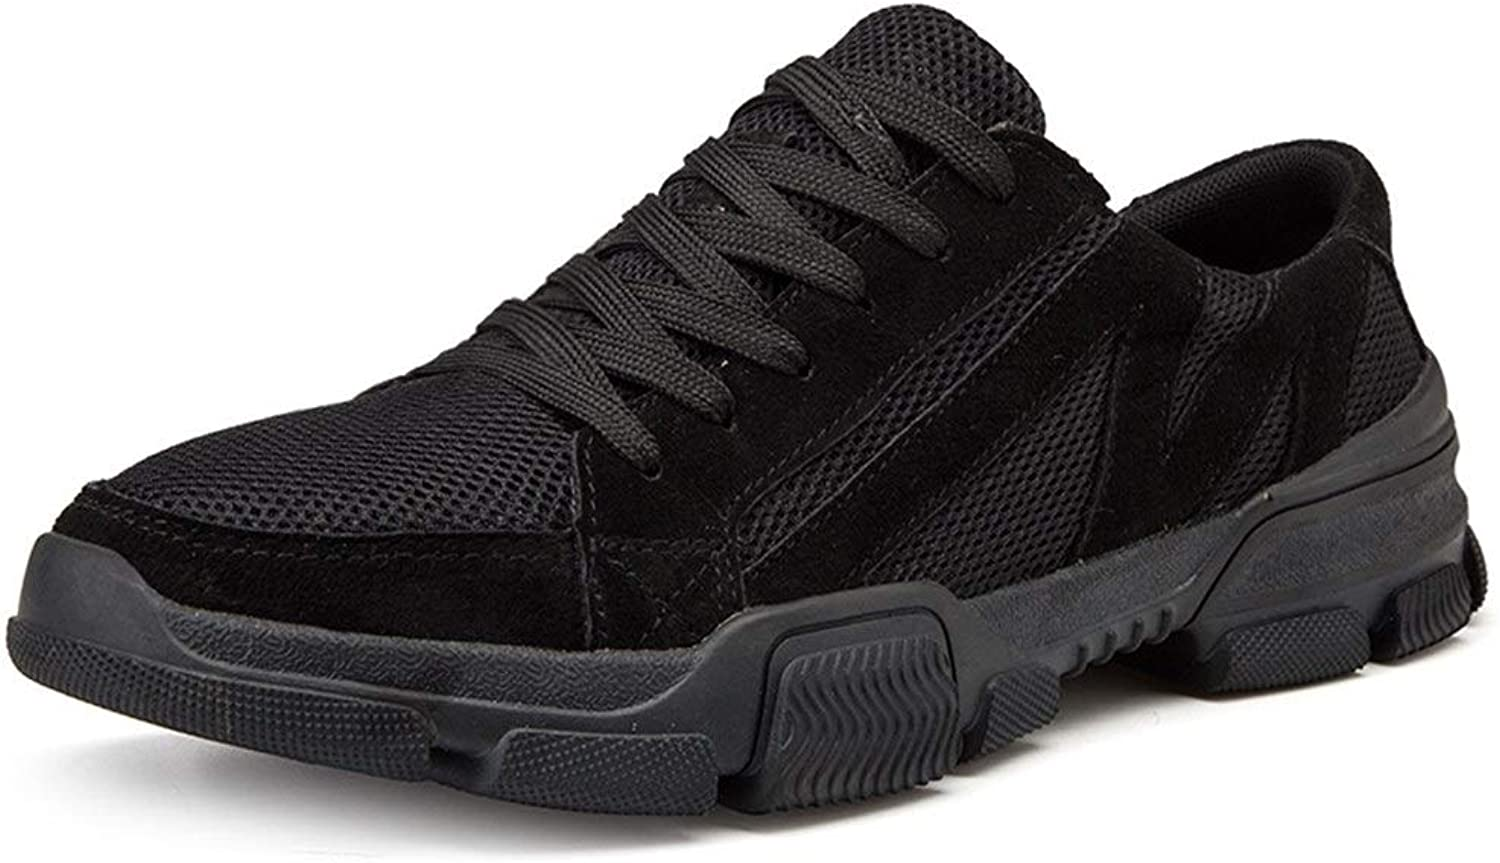 Athletic shoes for Men Sports shoes Lace Up shoes Mesh Material Light and Flexible shoes (color   Black, Size   7 UK)